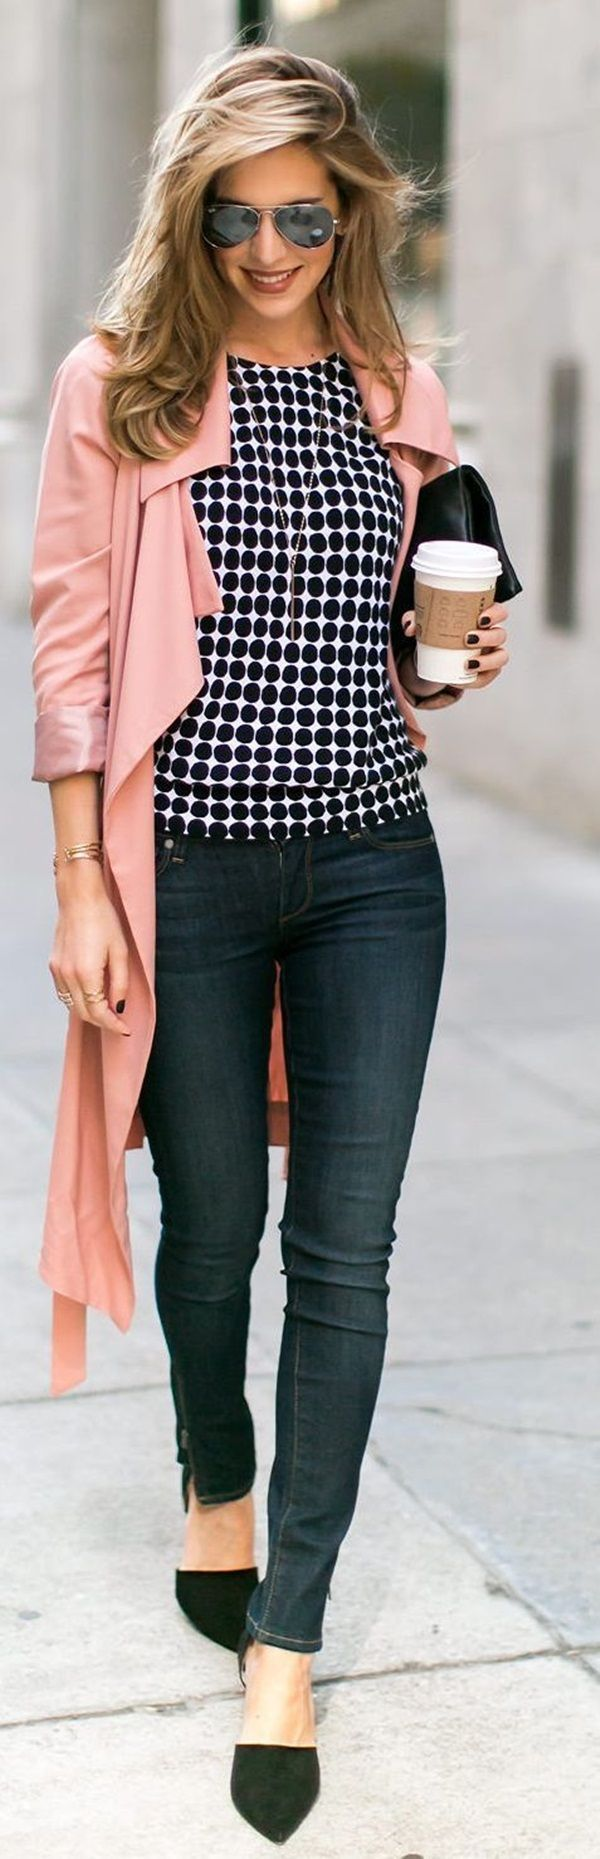 business casual for women jeans best outfits